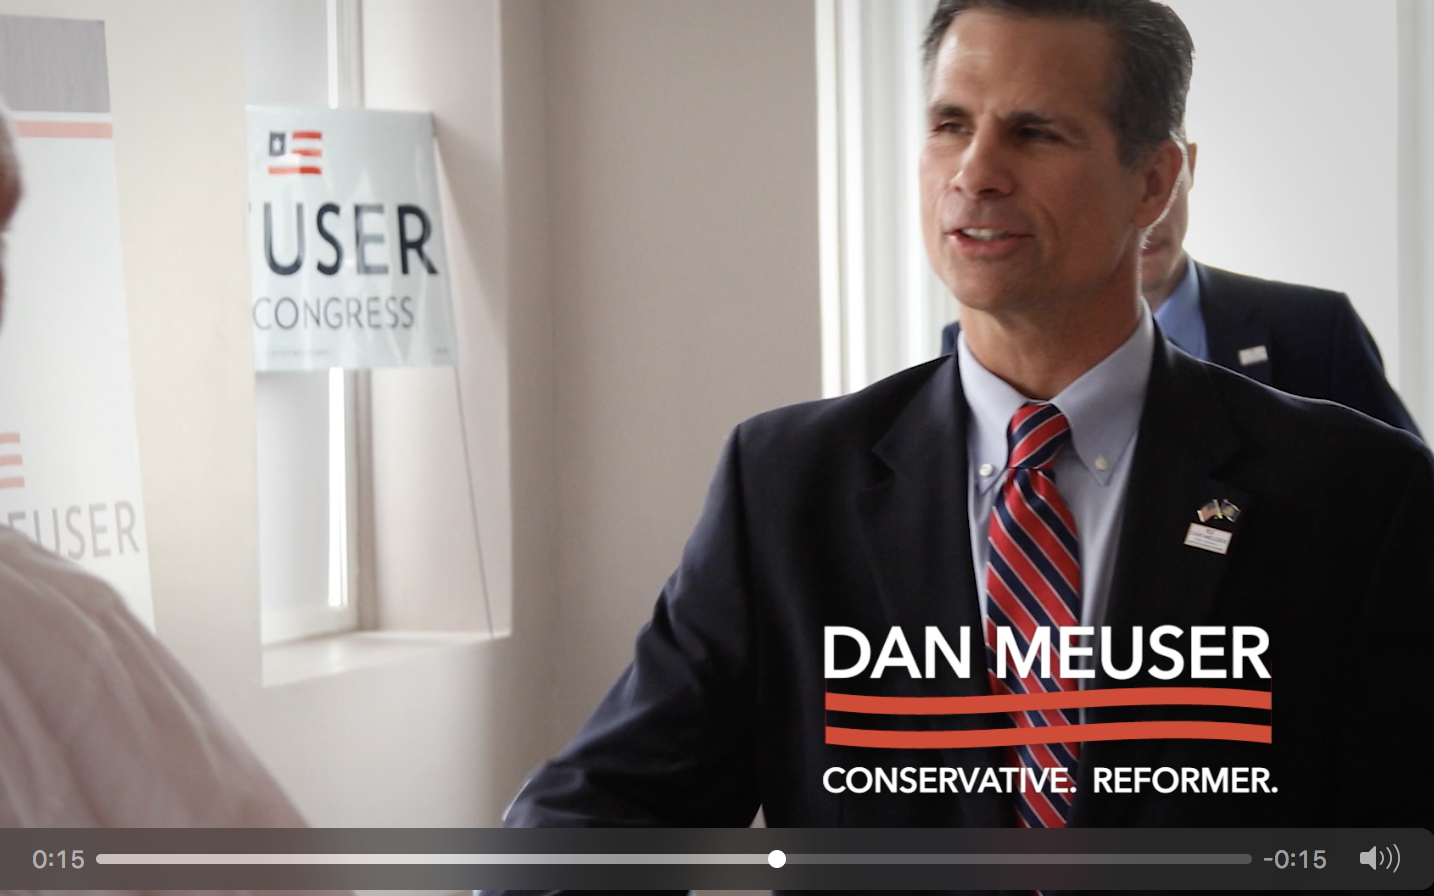 Meuser for Congress Releases First TV Ad of Fall Campaign